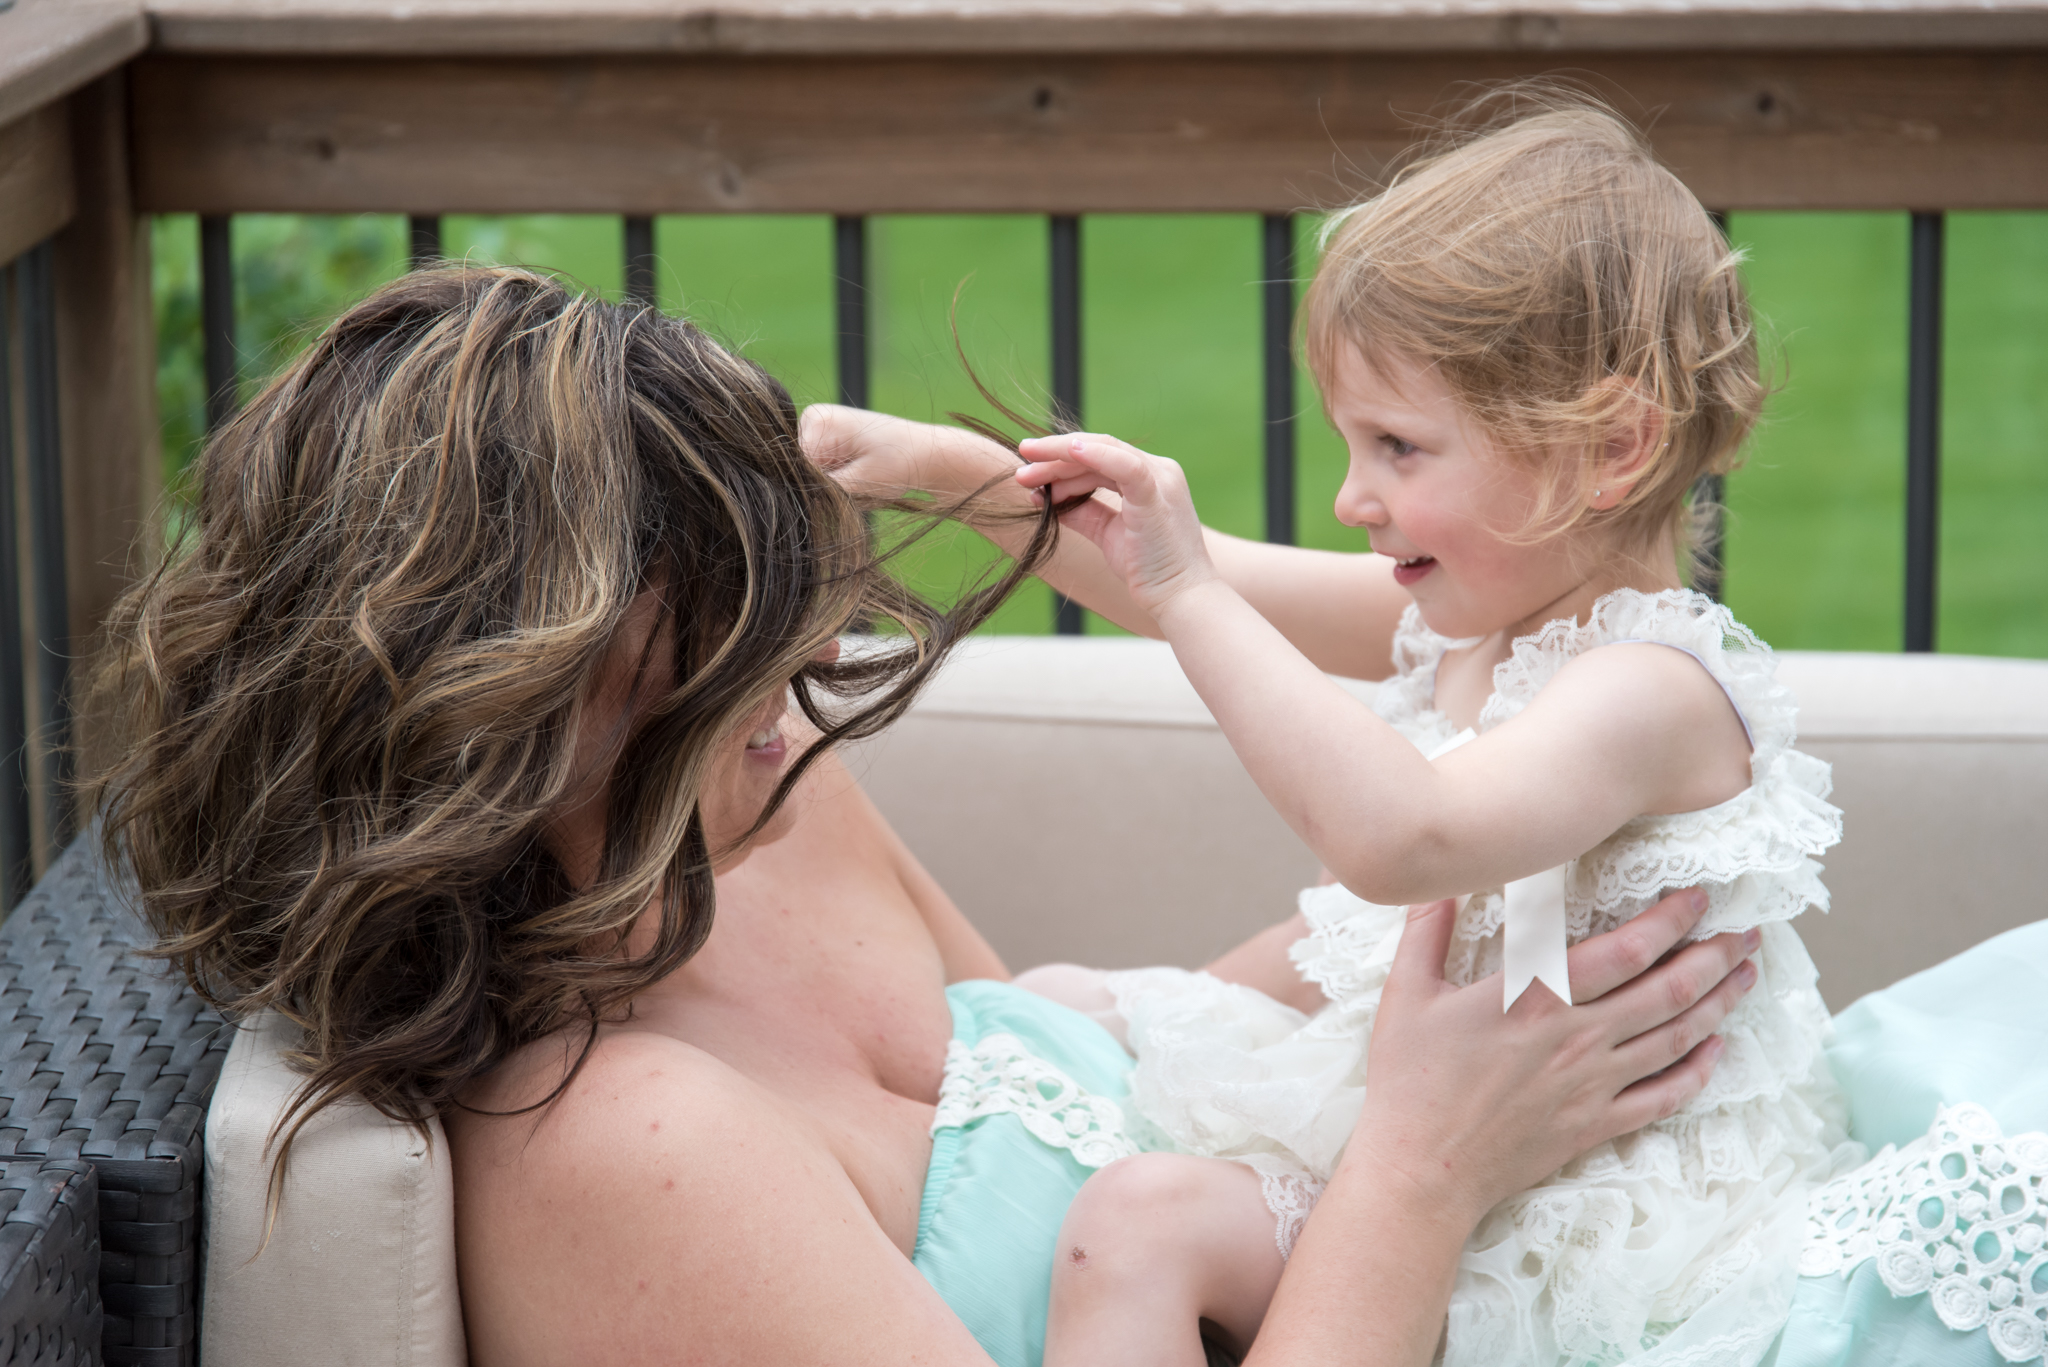 Girl plays with mom's hair